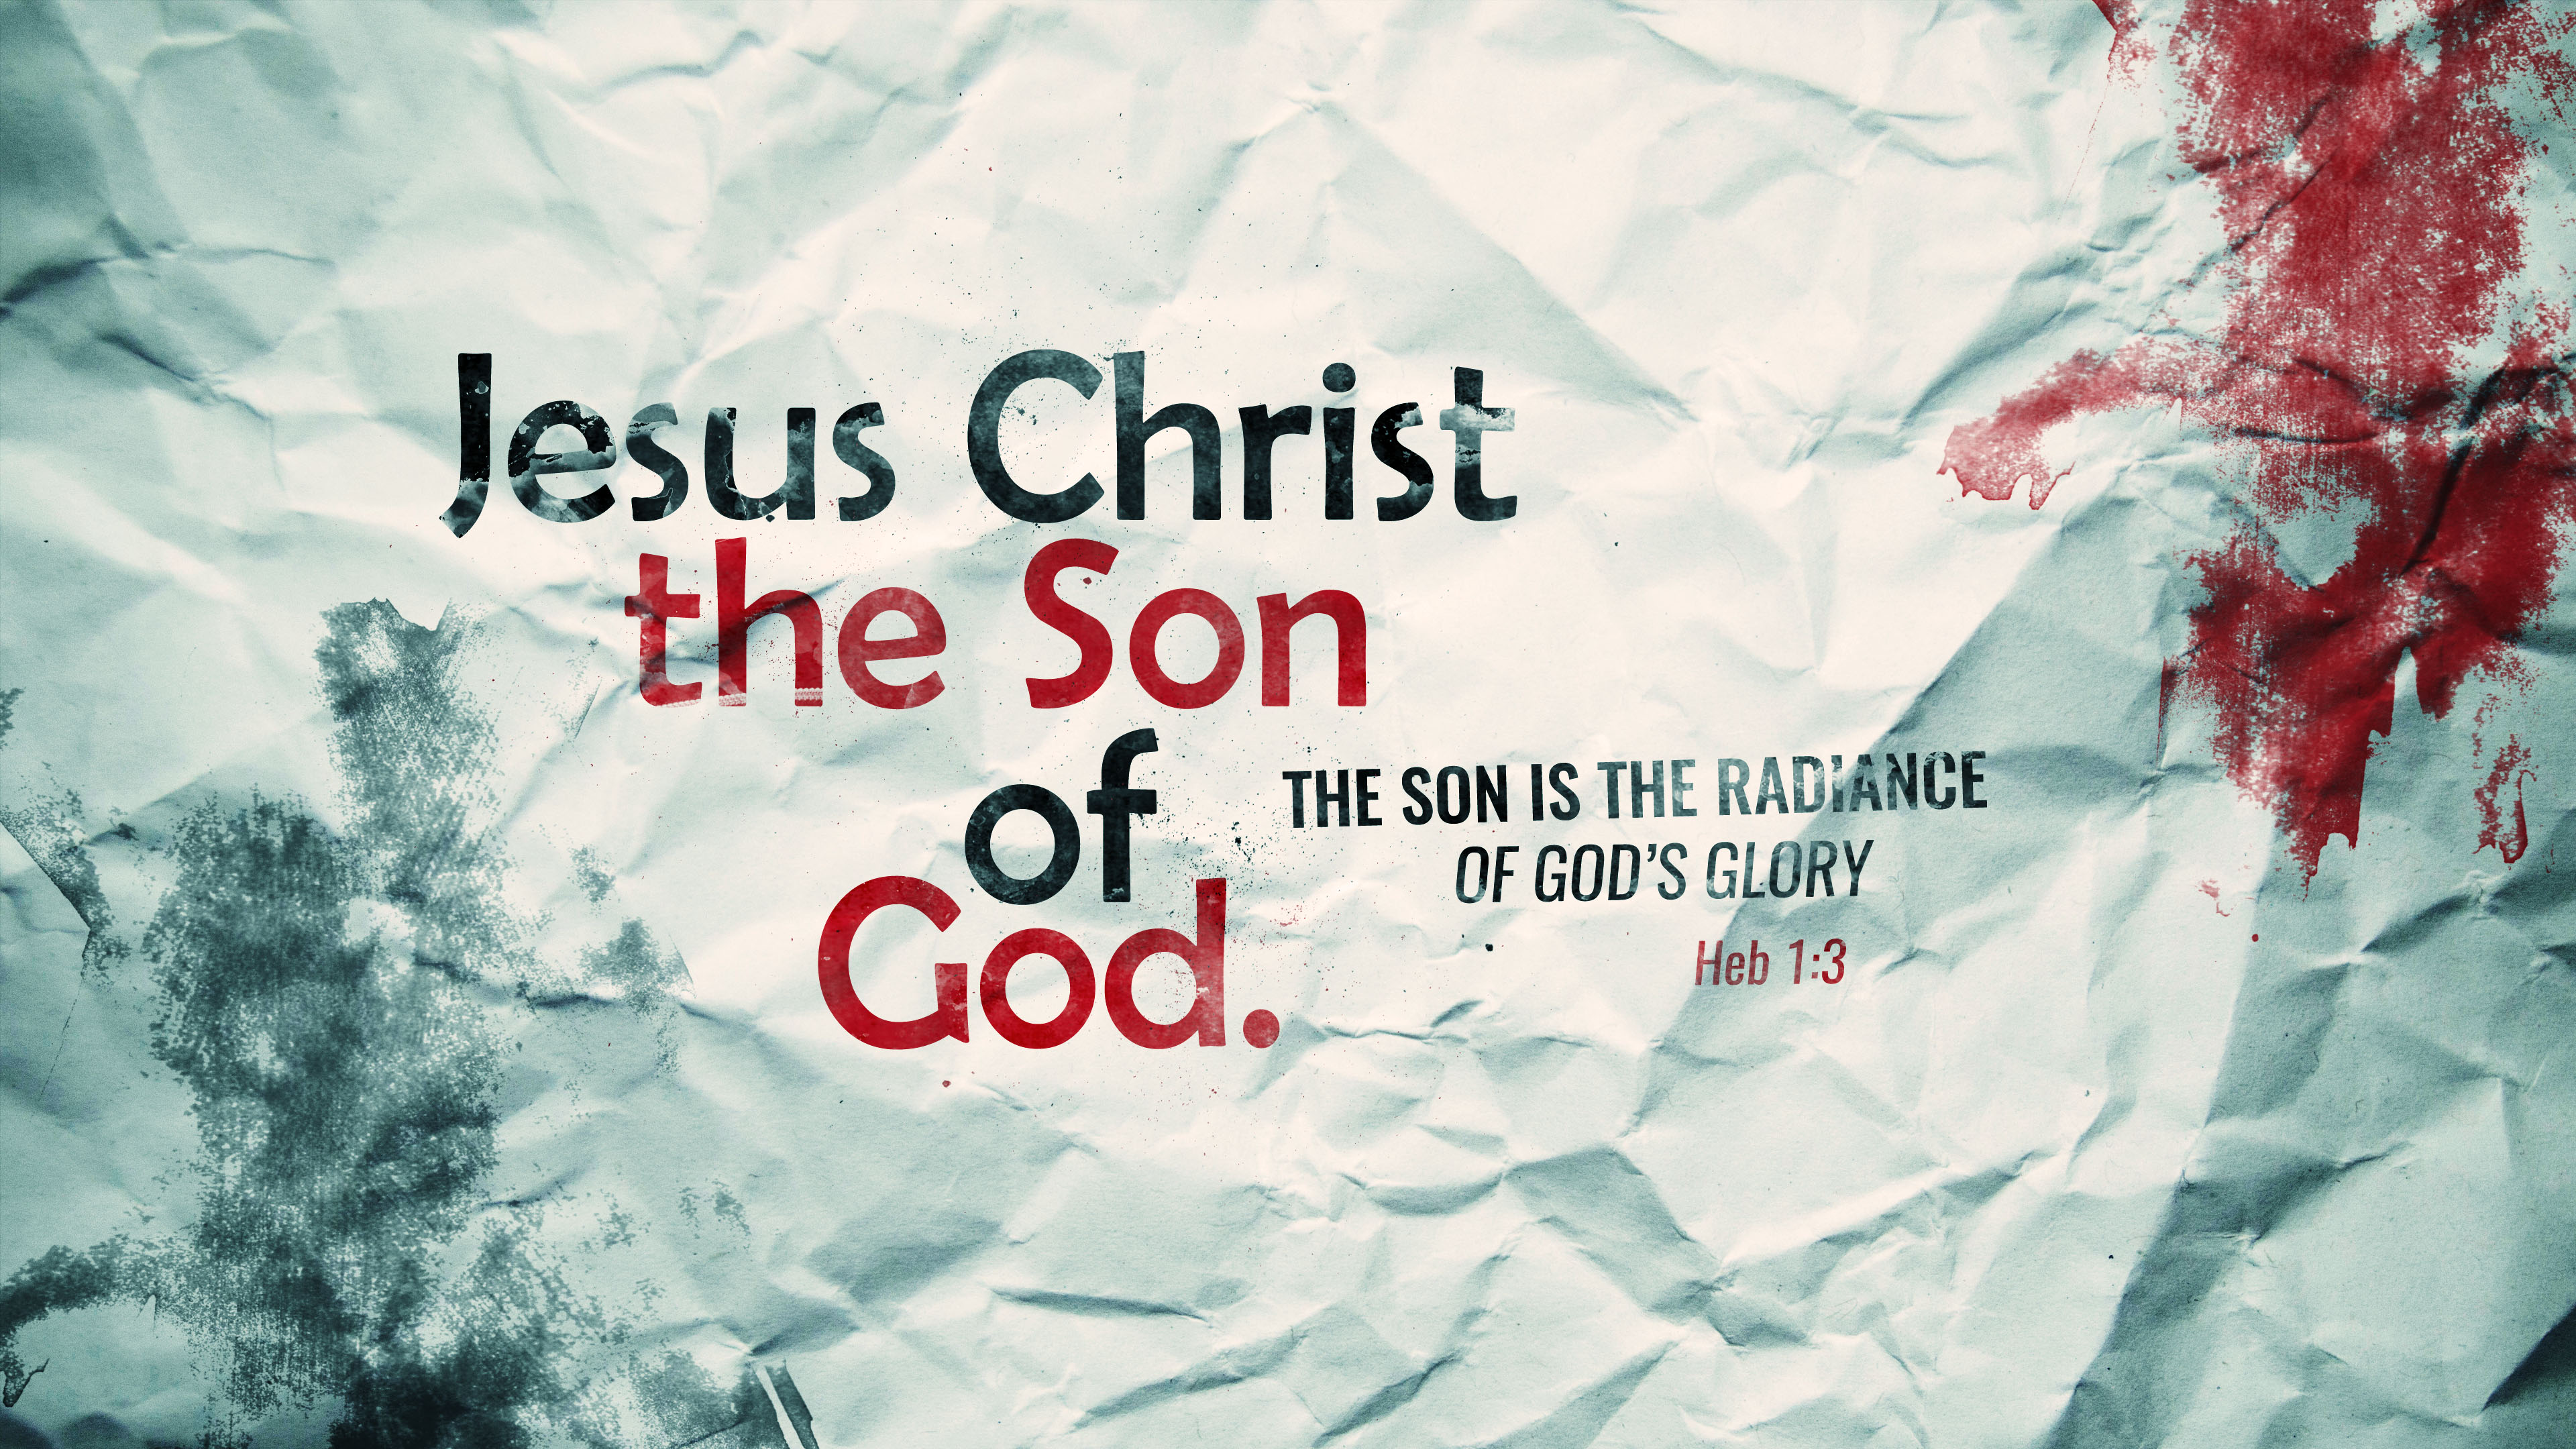 Jesus Christ the Son of God